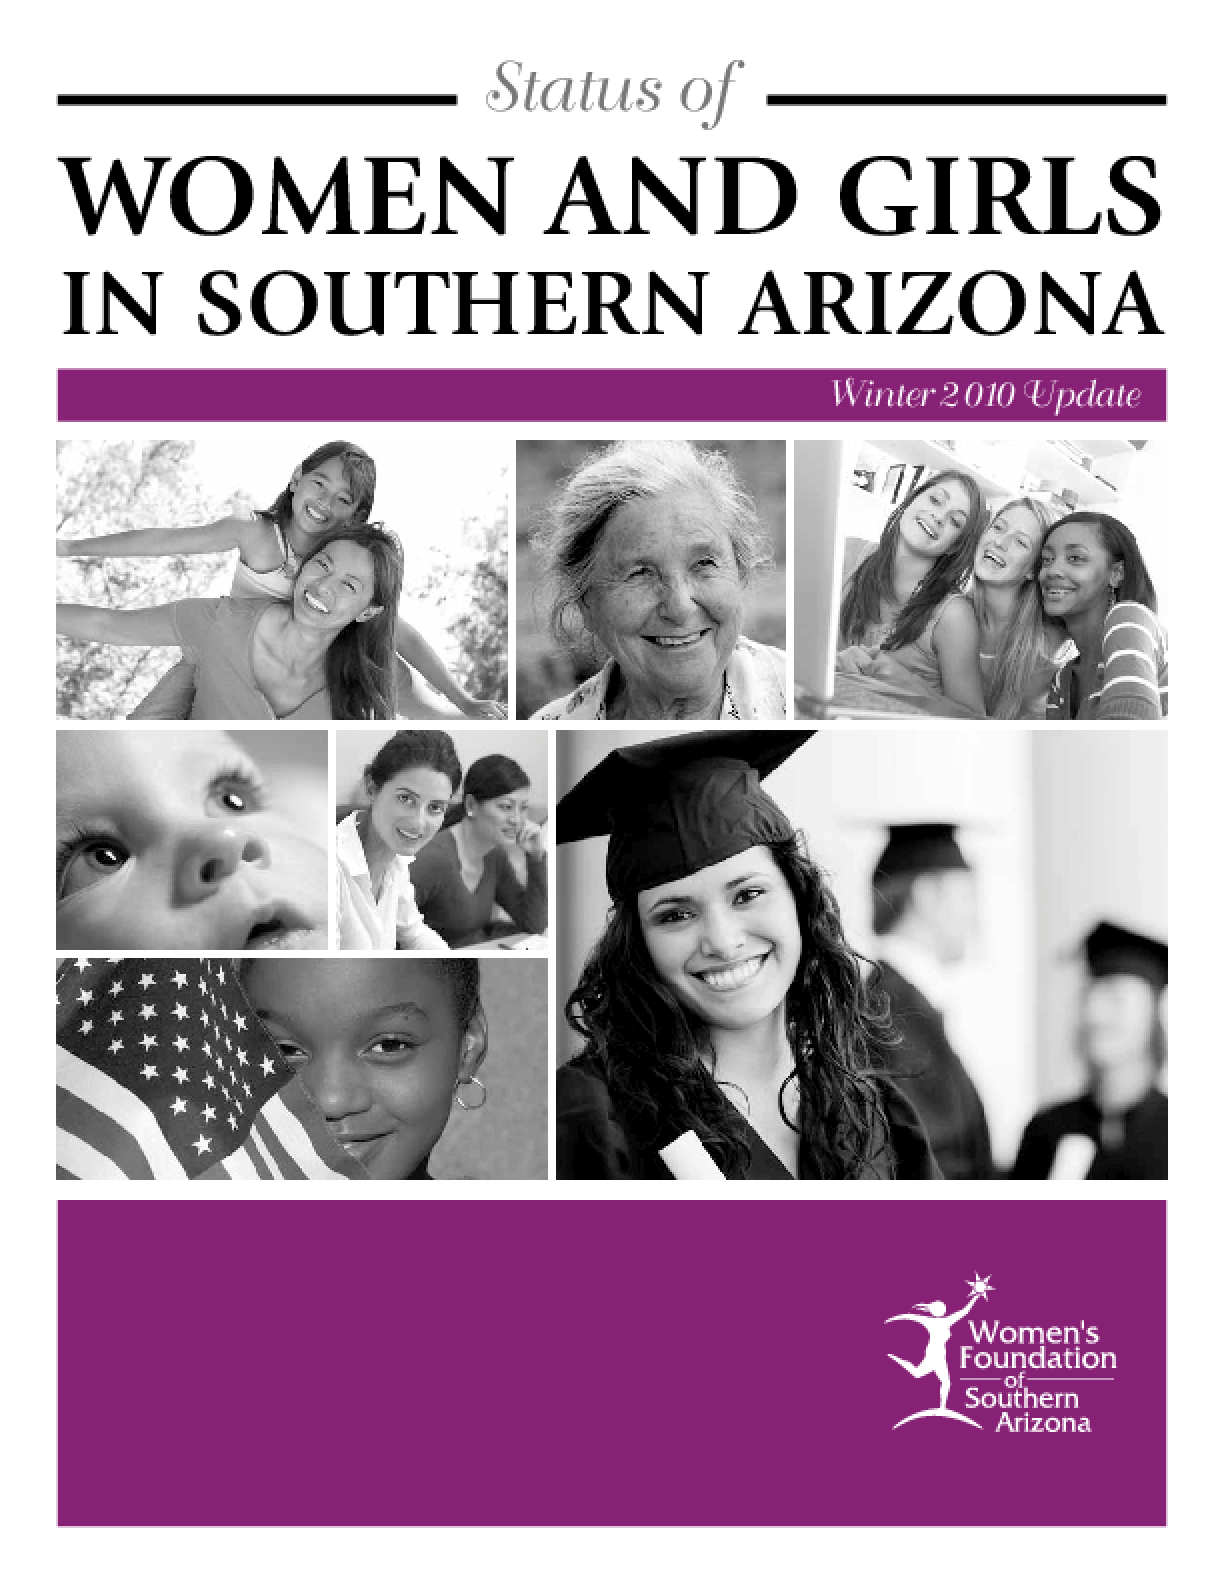 Status of Women and Girls in Southern Arizona 2010